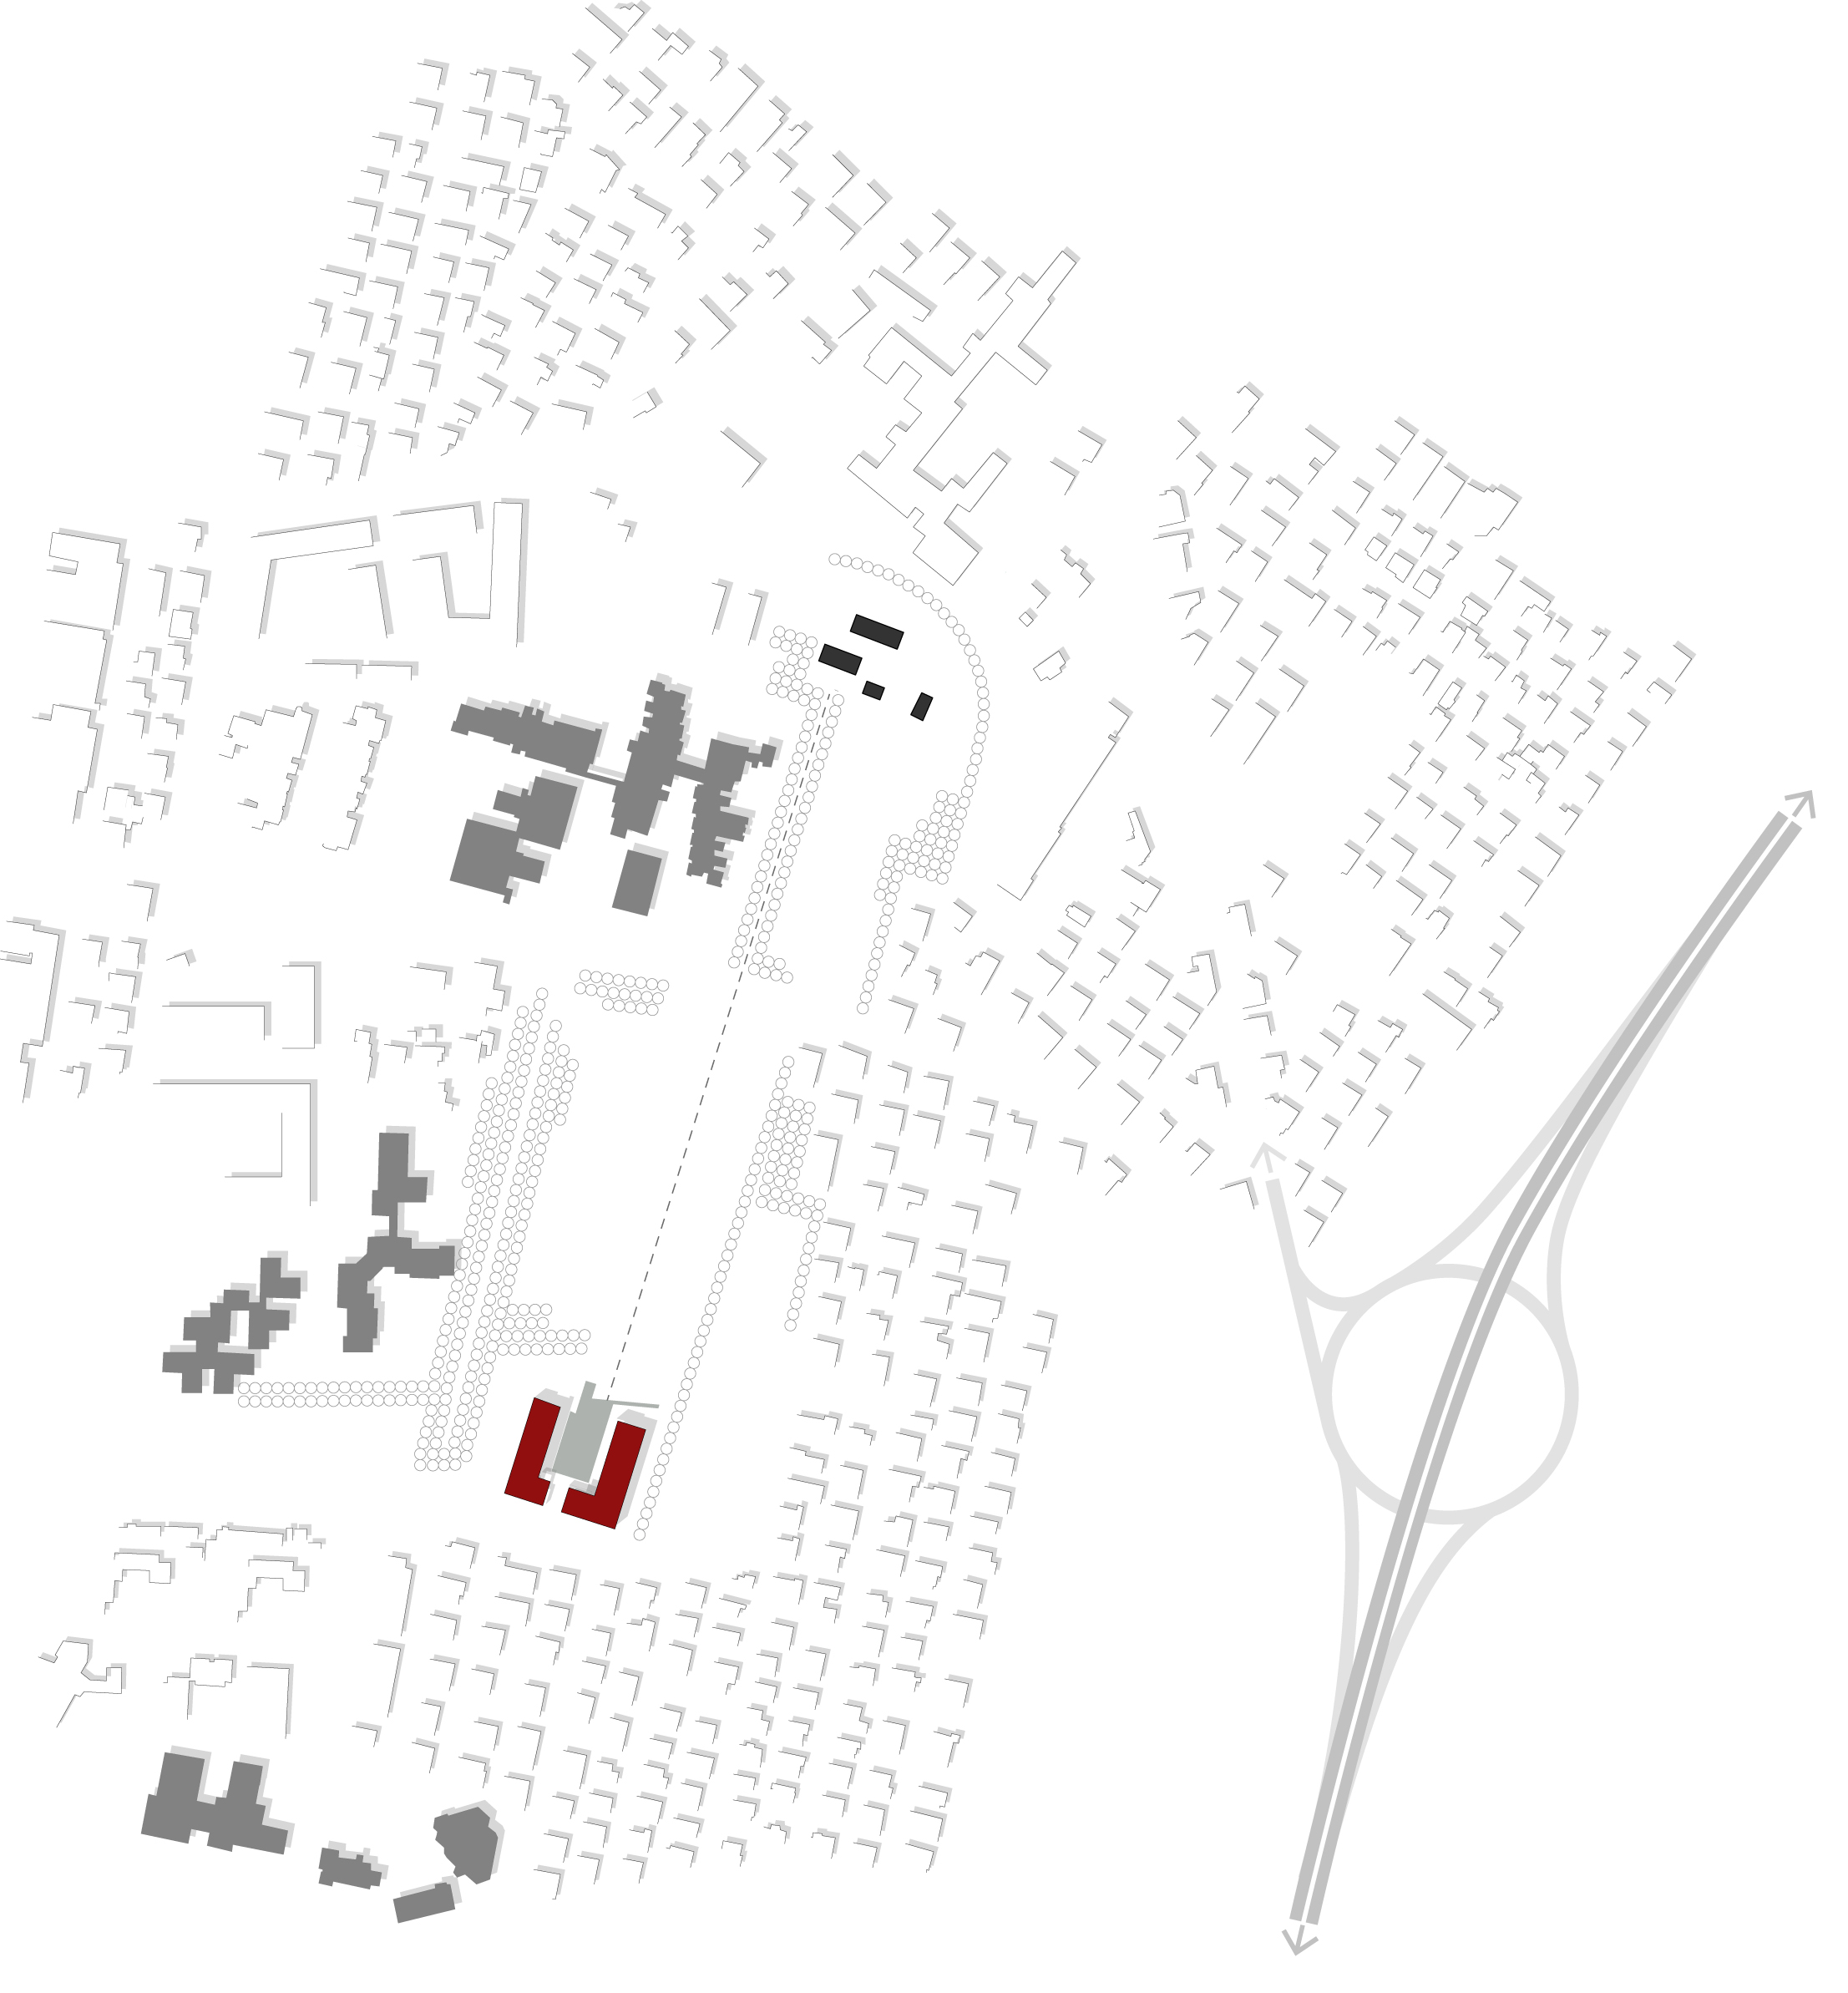 plan of the project area